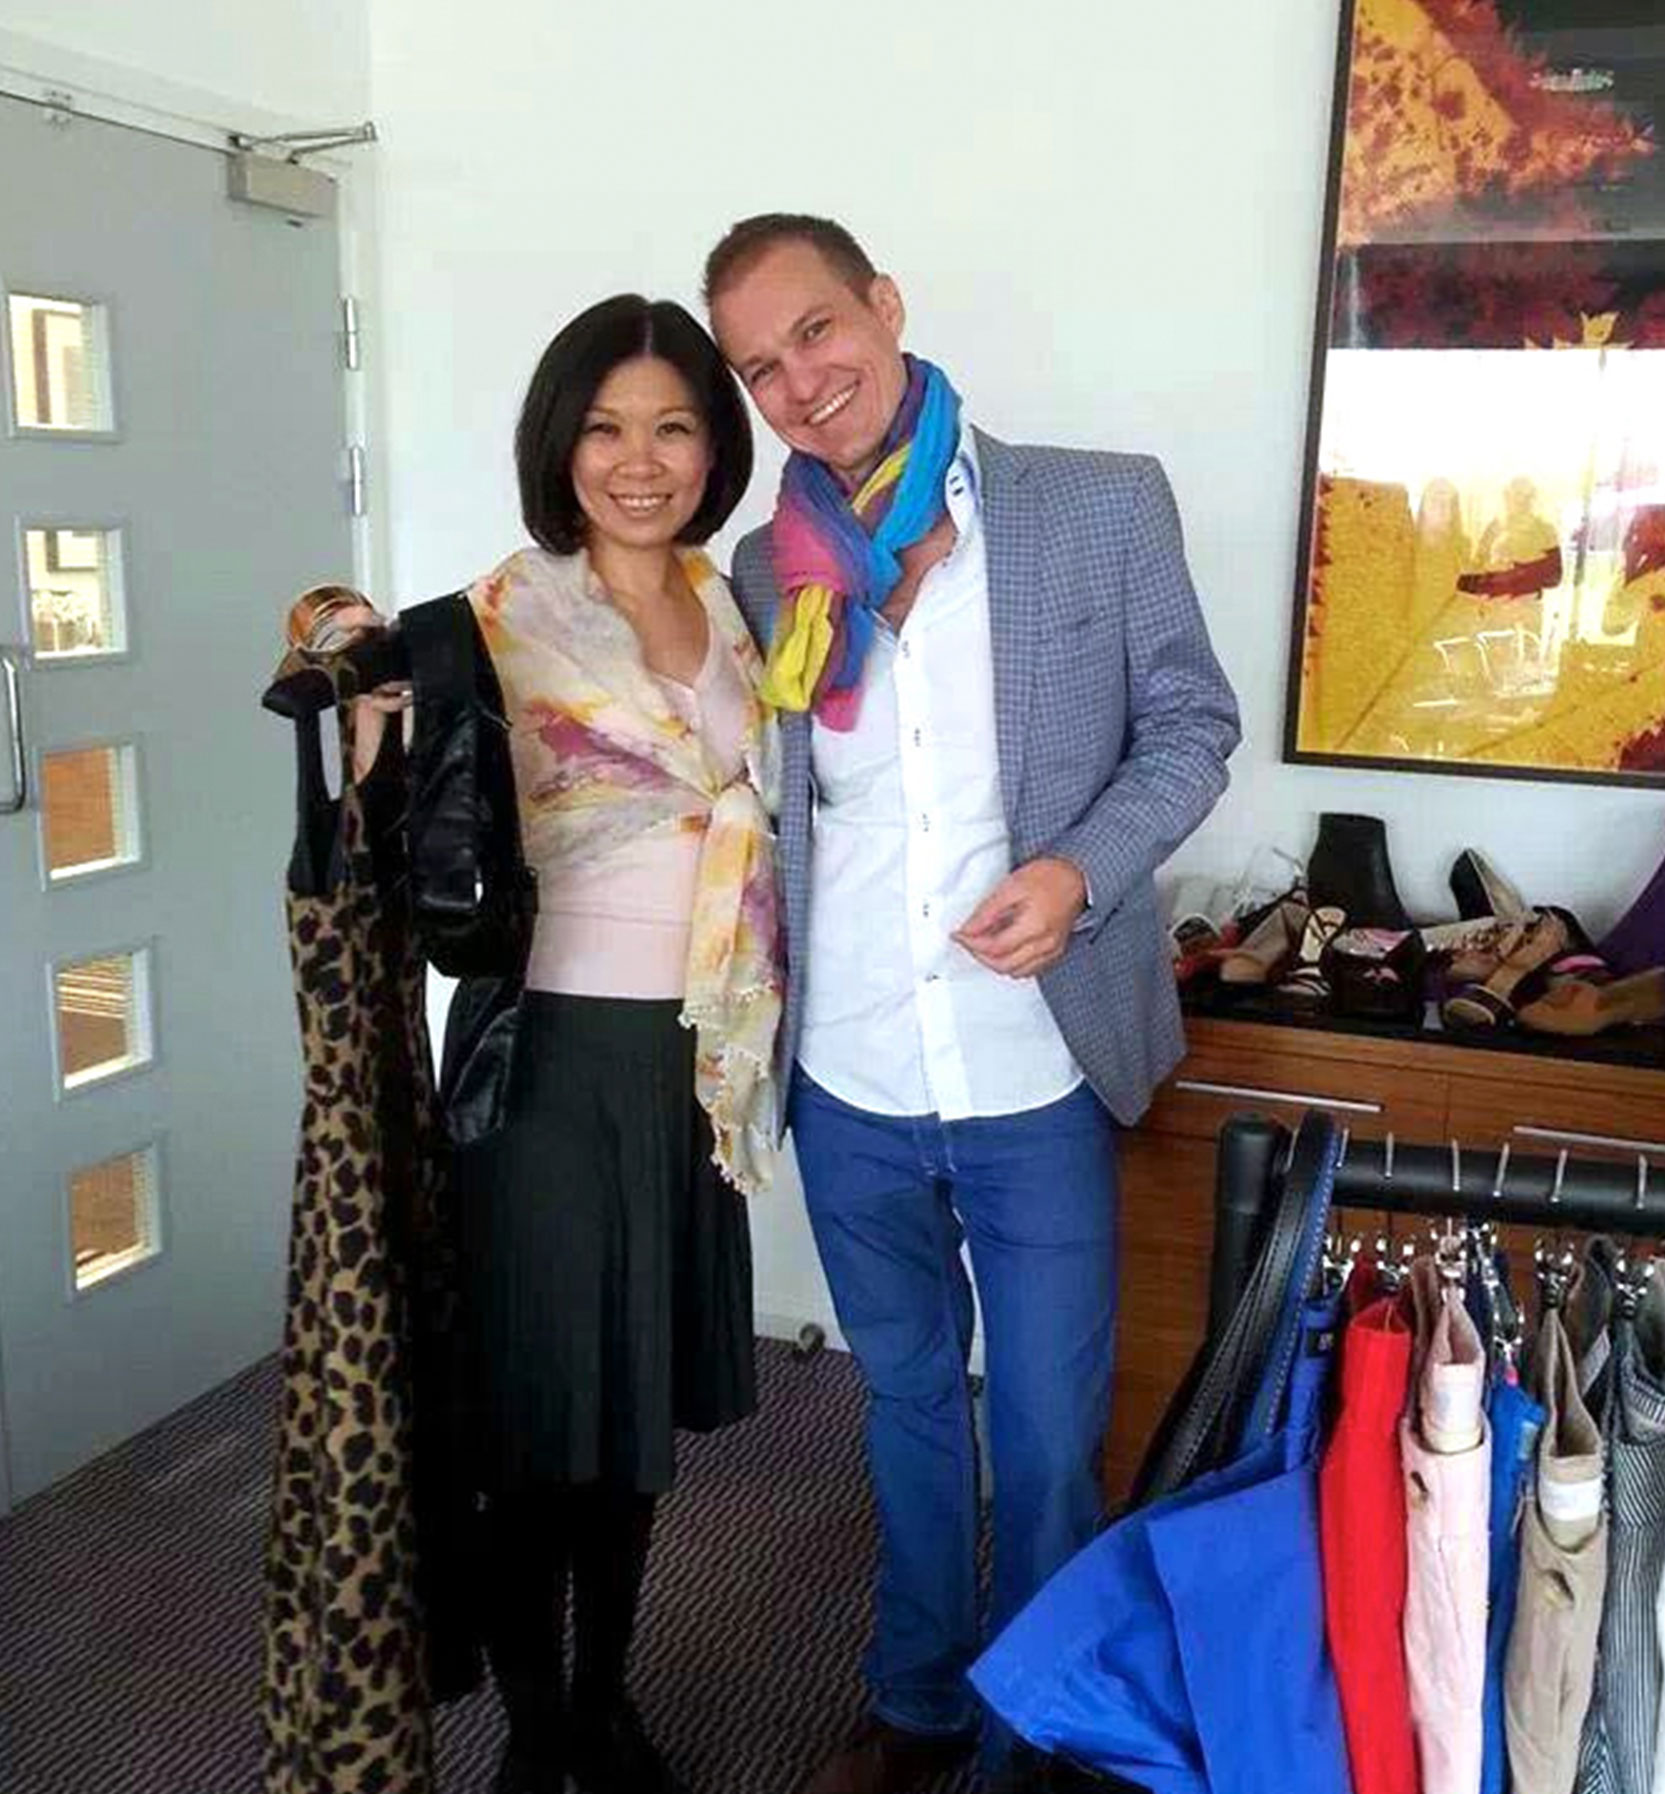 Pin Joue Chang from Malaysia and Pavol Cvik from Slovakia